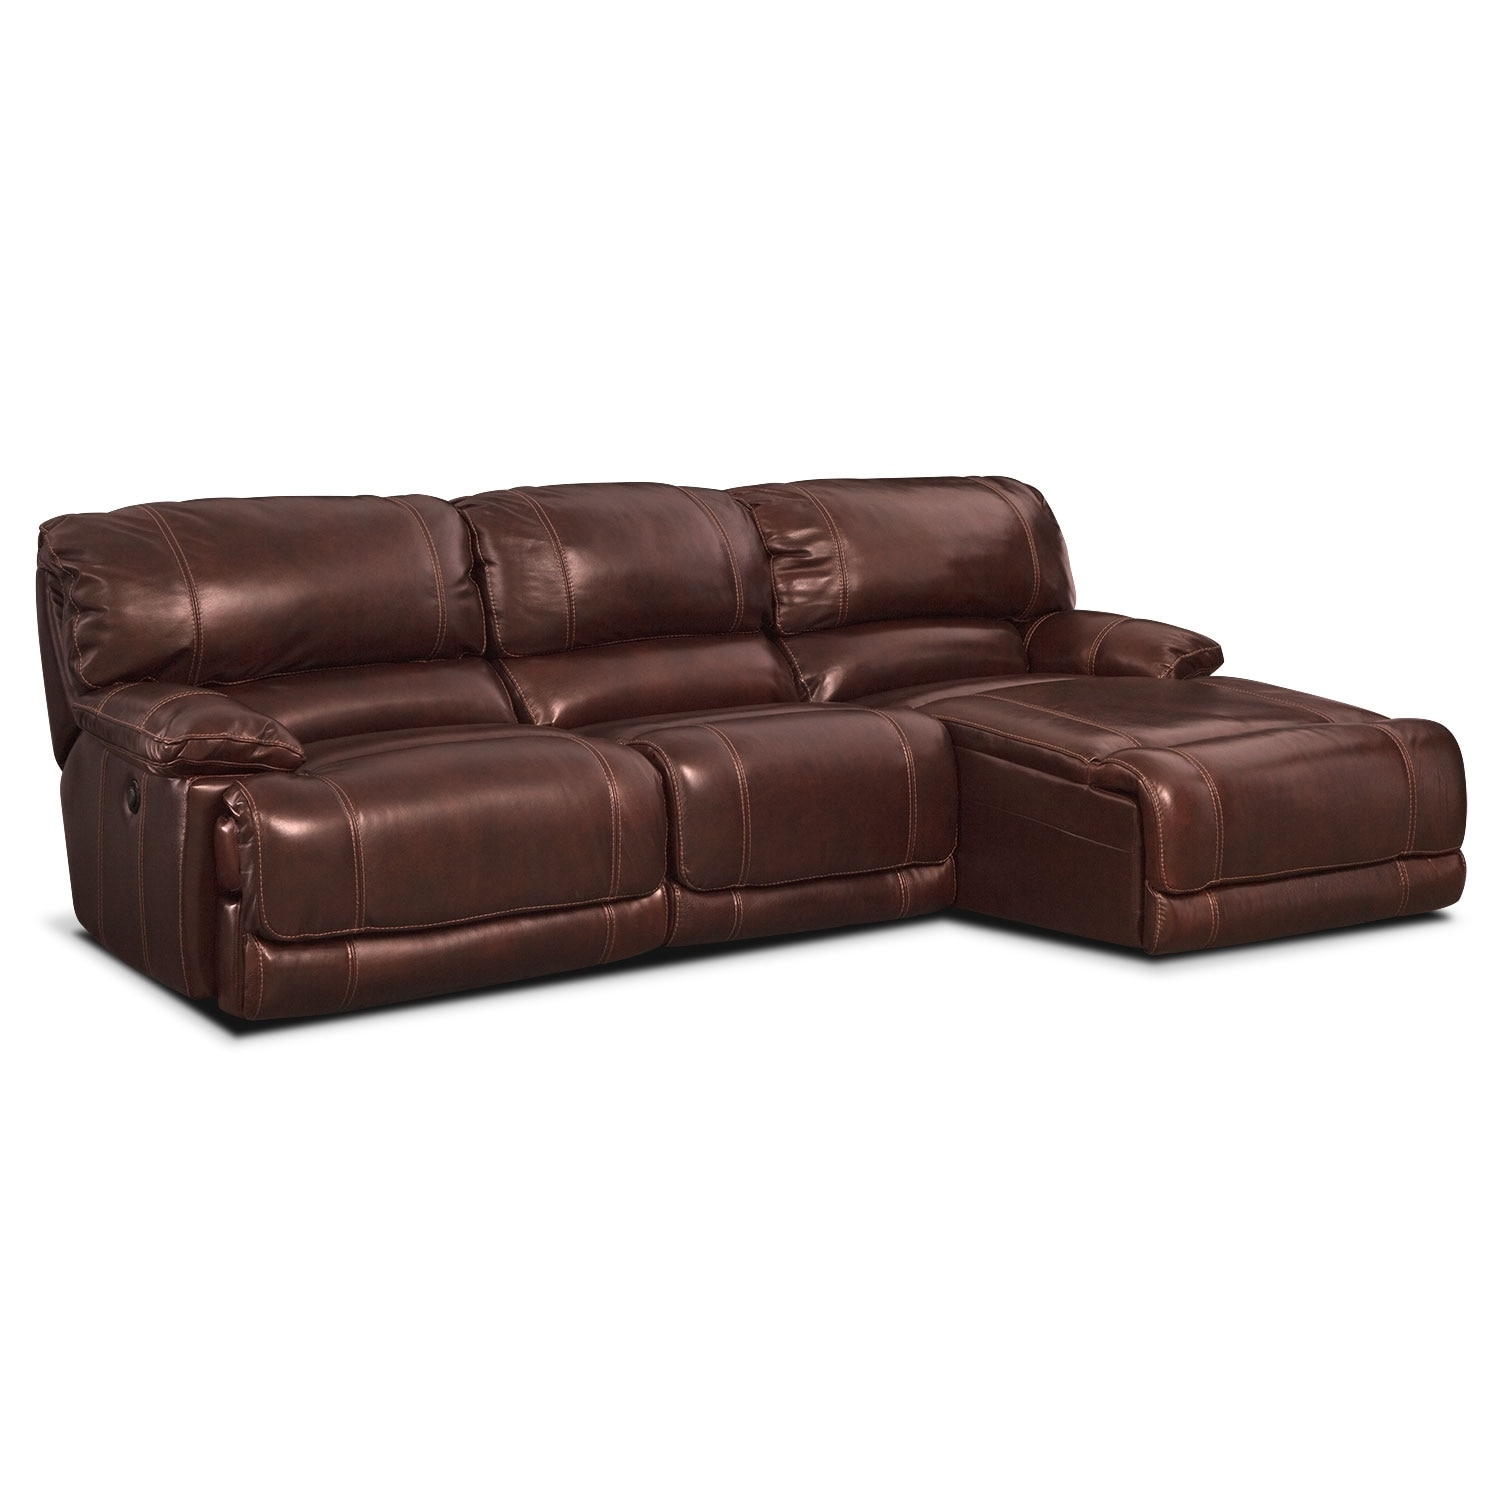 3 pc sectional sofa with recliners sure fit damask cover st malo piece power reclining right